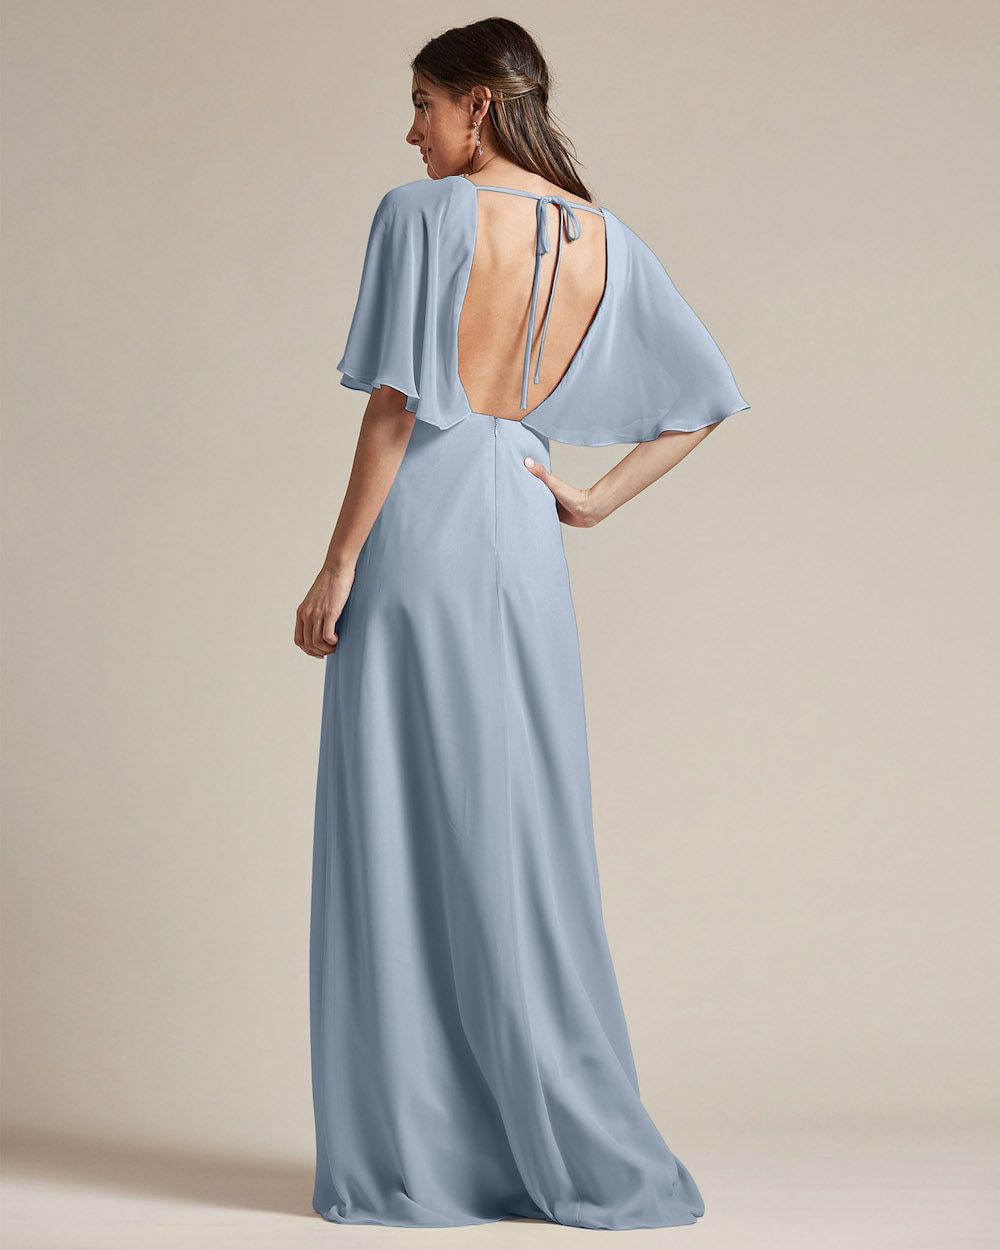 Flounder Design With Large Cut Out Back Long Skirt Bridesmaid Gown - Back